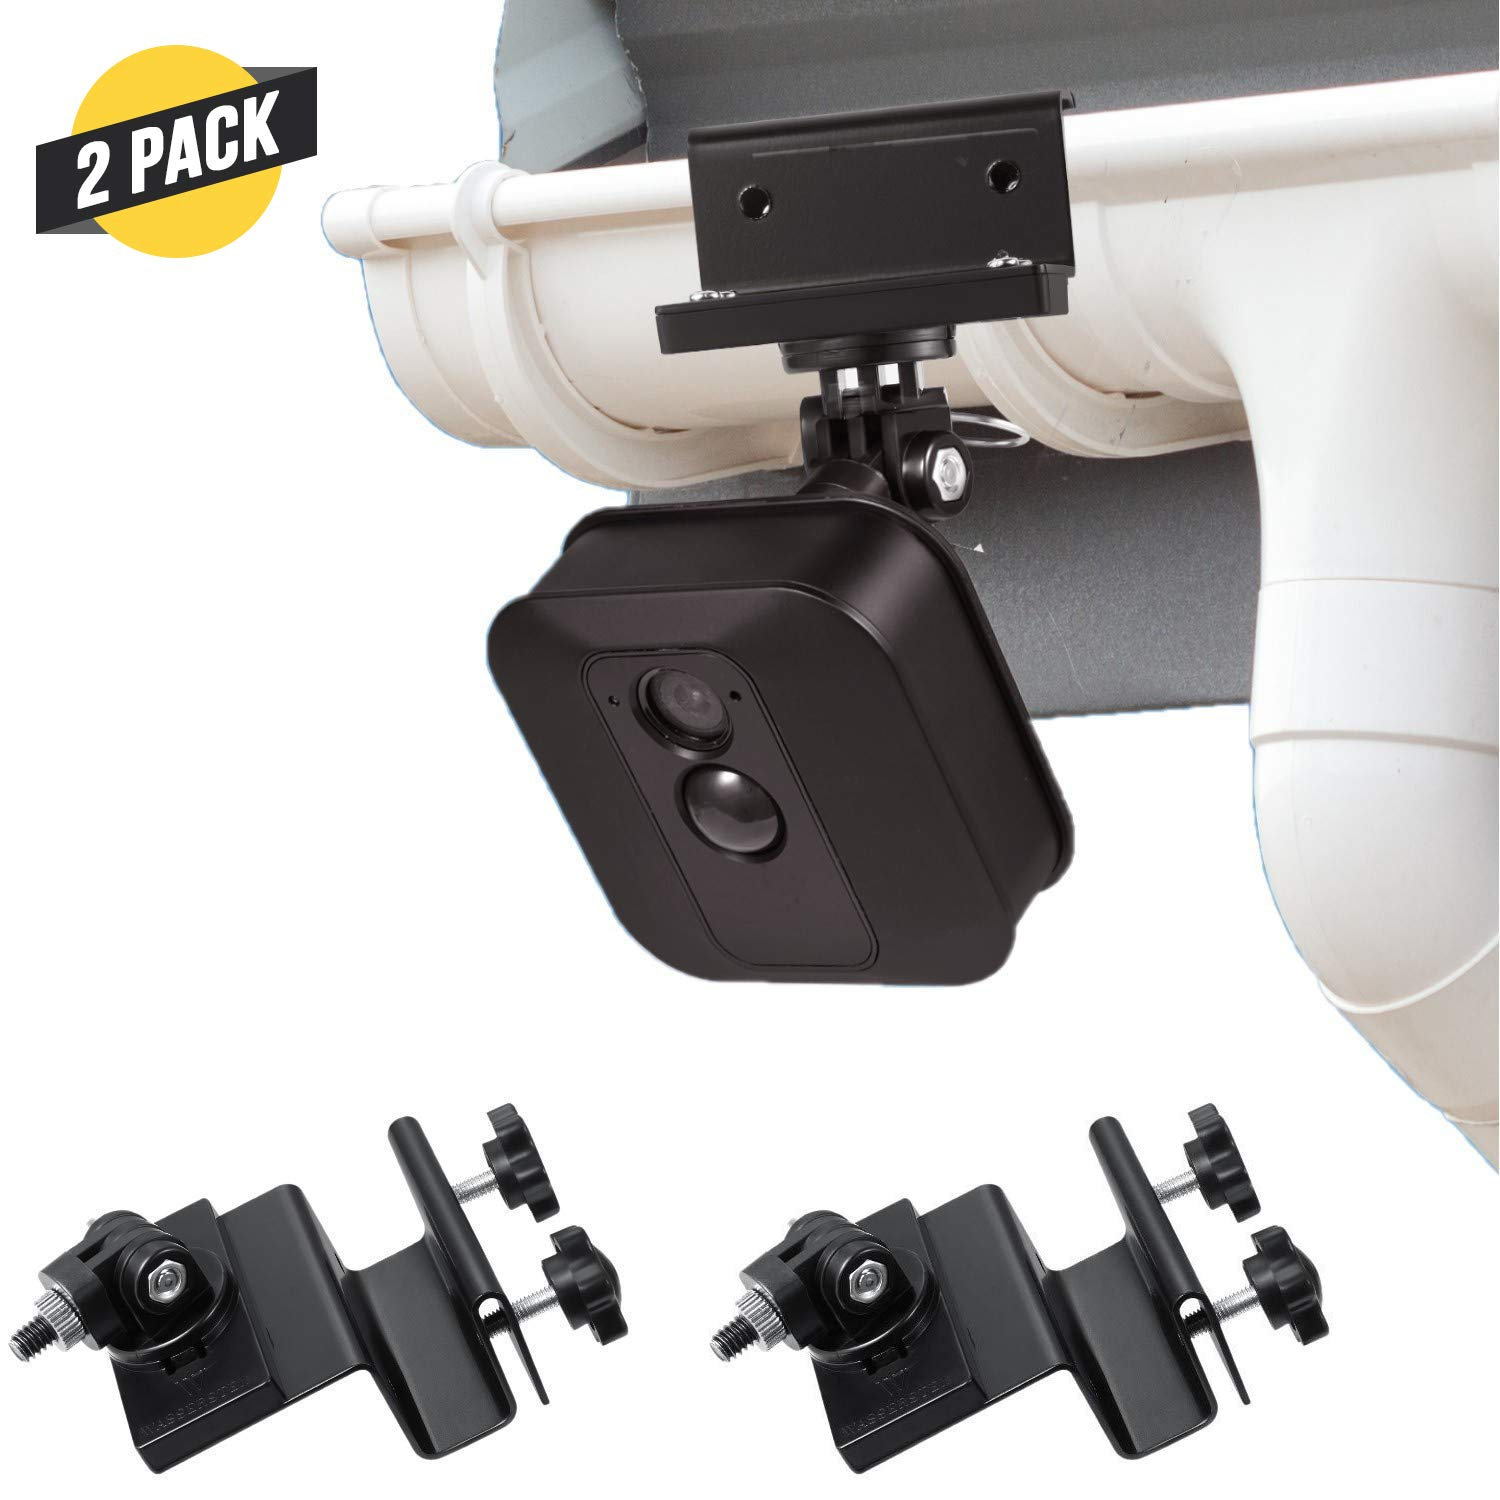 Weatherproof Gutter Mount for Blink XT Outdoor Camera with Universal Screw Adapter - by Wasserstein - Best Viewing Angle for Your Surveillance Camera (2 Pack, Black)